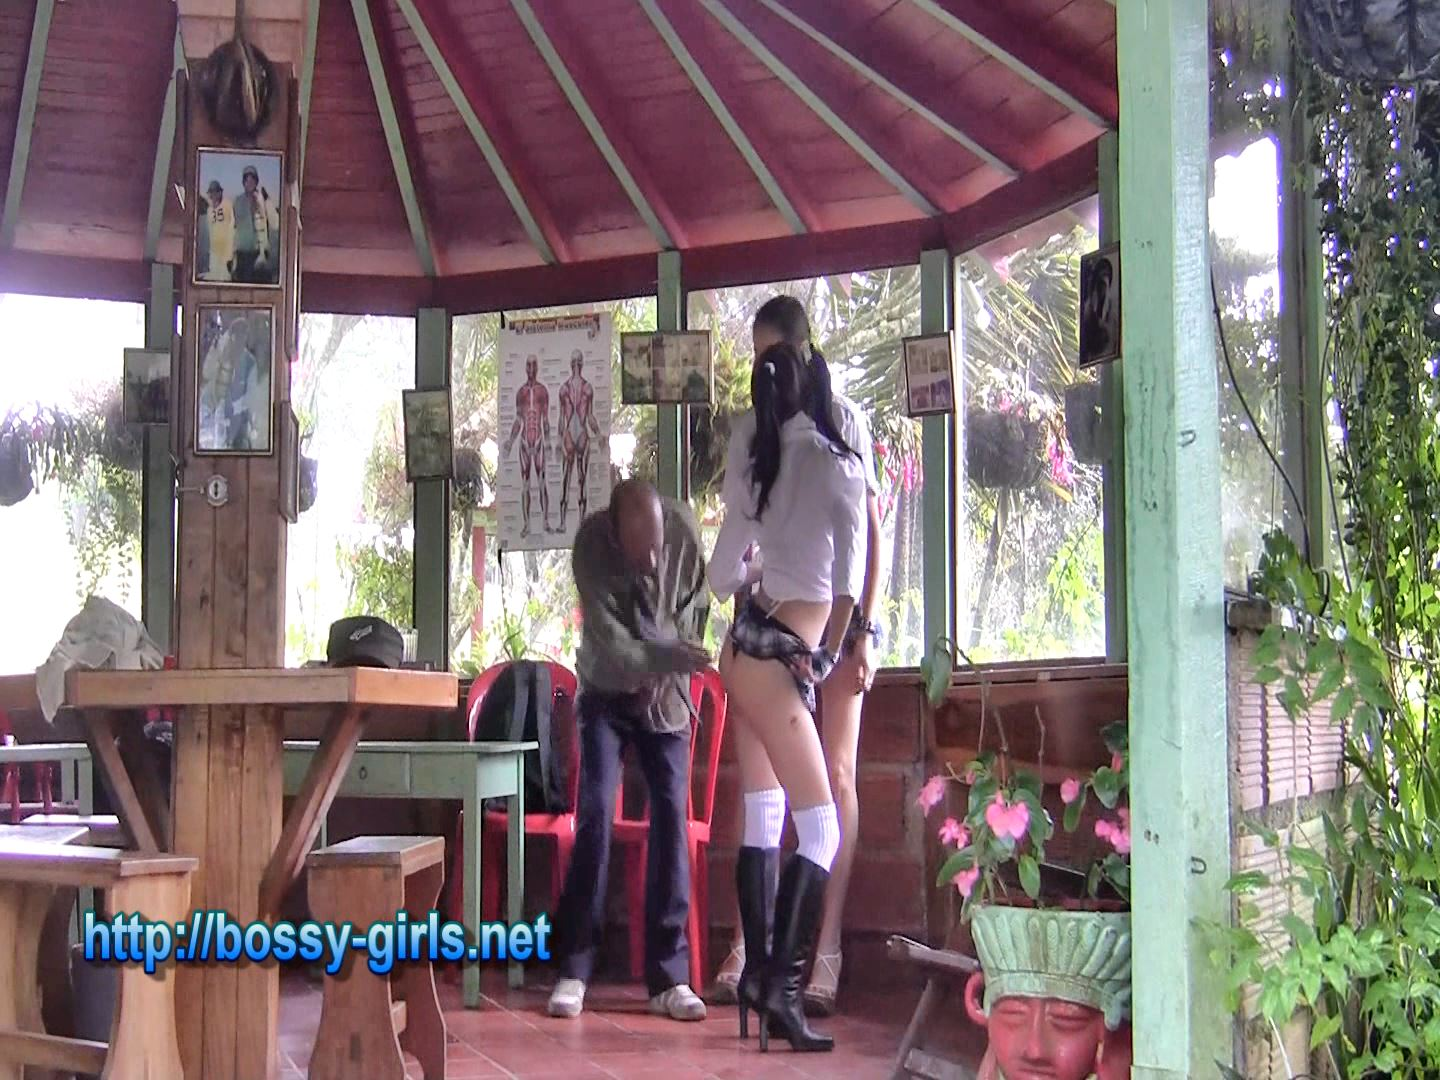 MS. KASR, MS. Leila In Scene: EXTROVERT STUDENTS 01 Introduction - BOSSY GIRLS - FULL HD/1080p/WMV